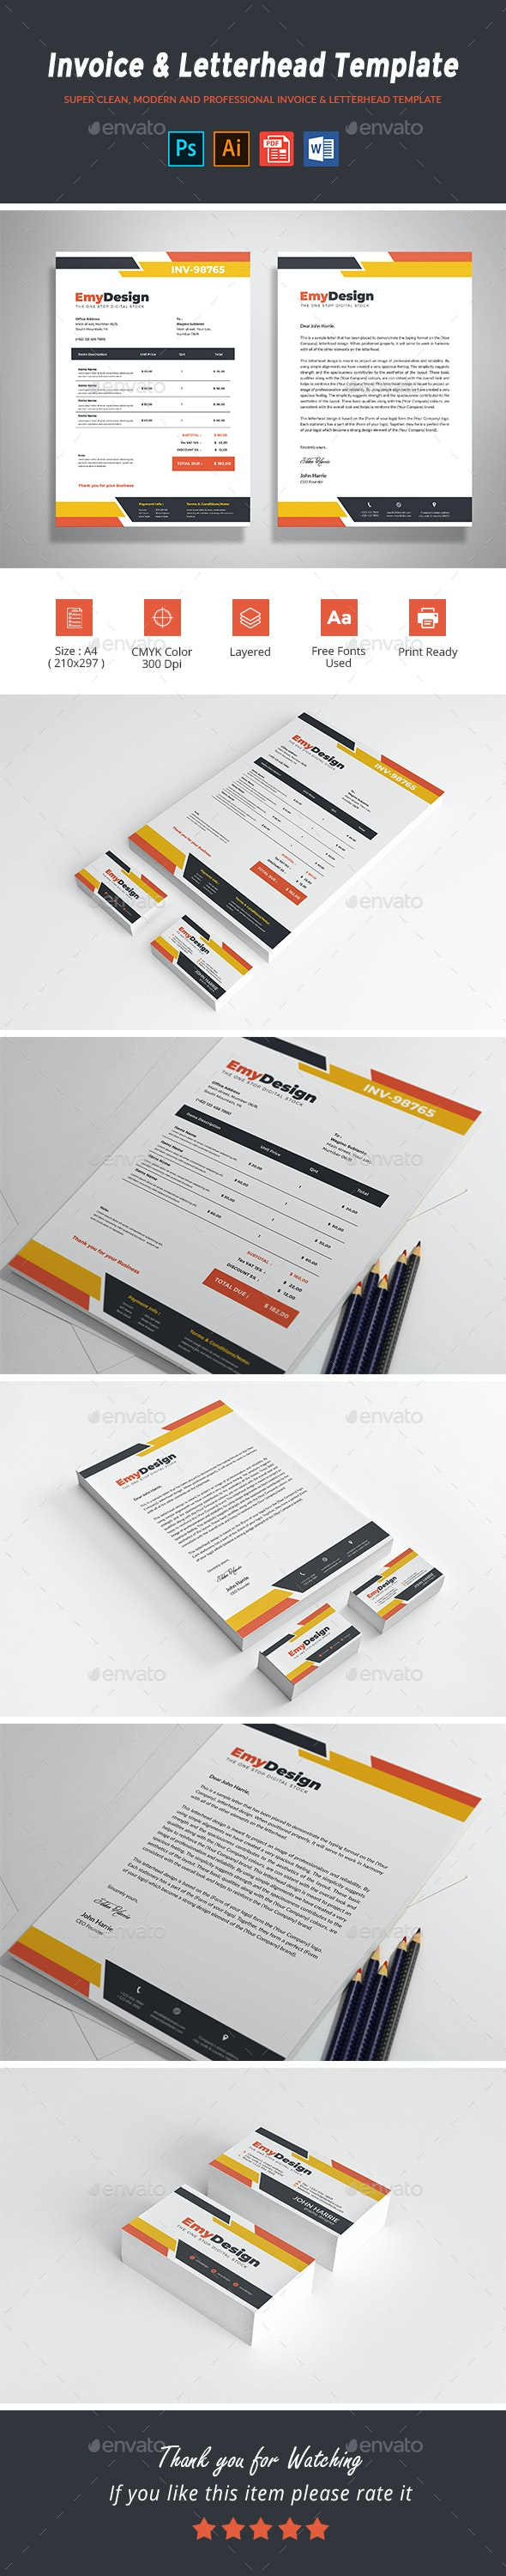 Invoice & Letterhead Template - Proposals & Invoices Stationery